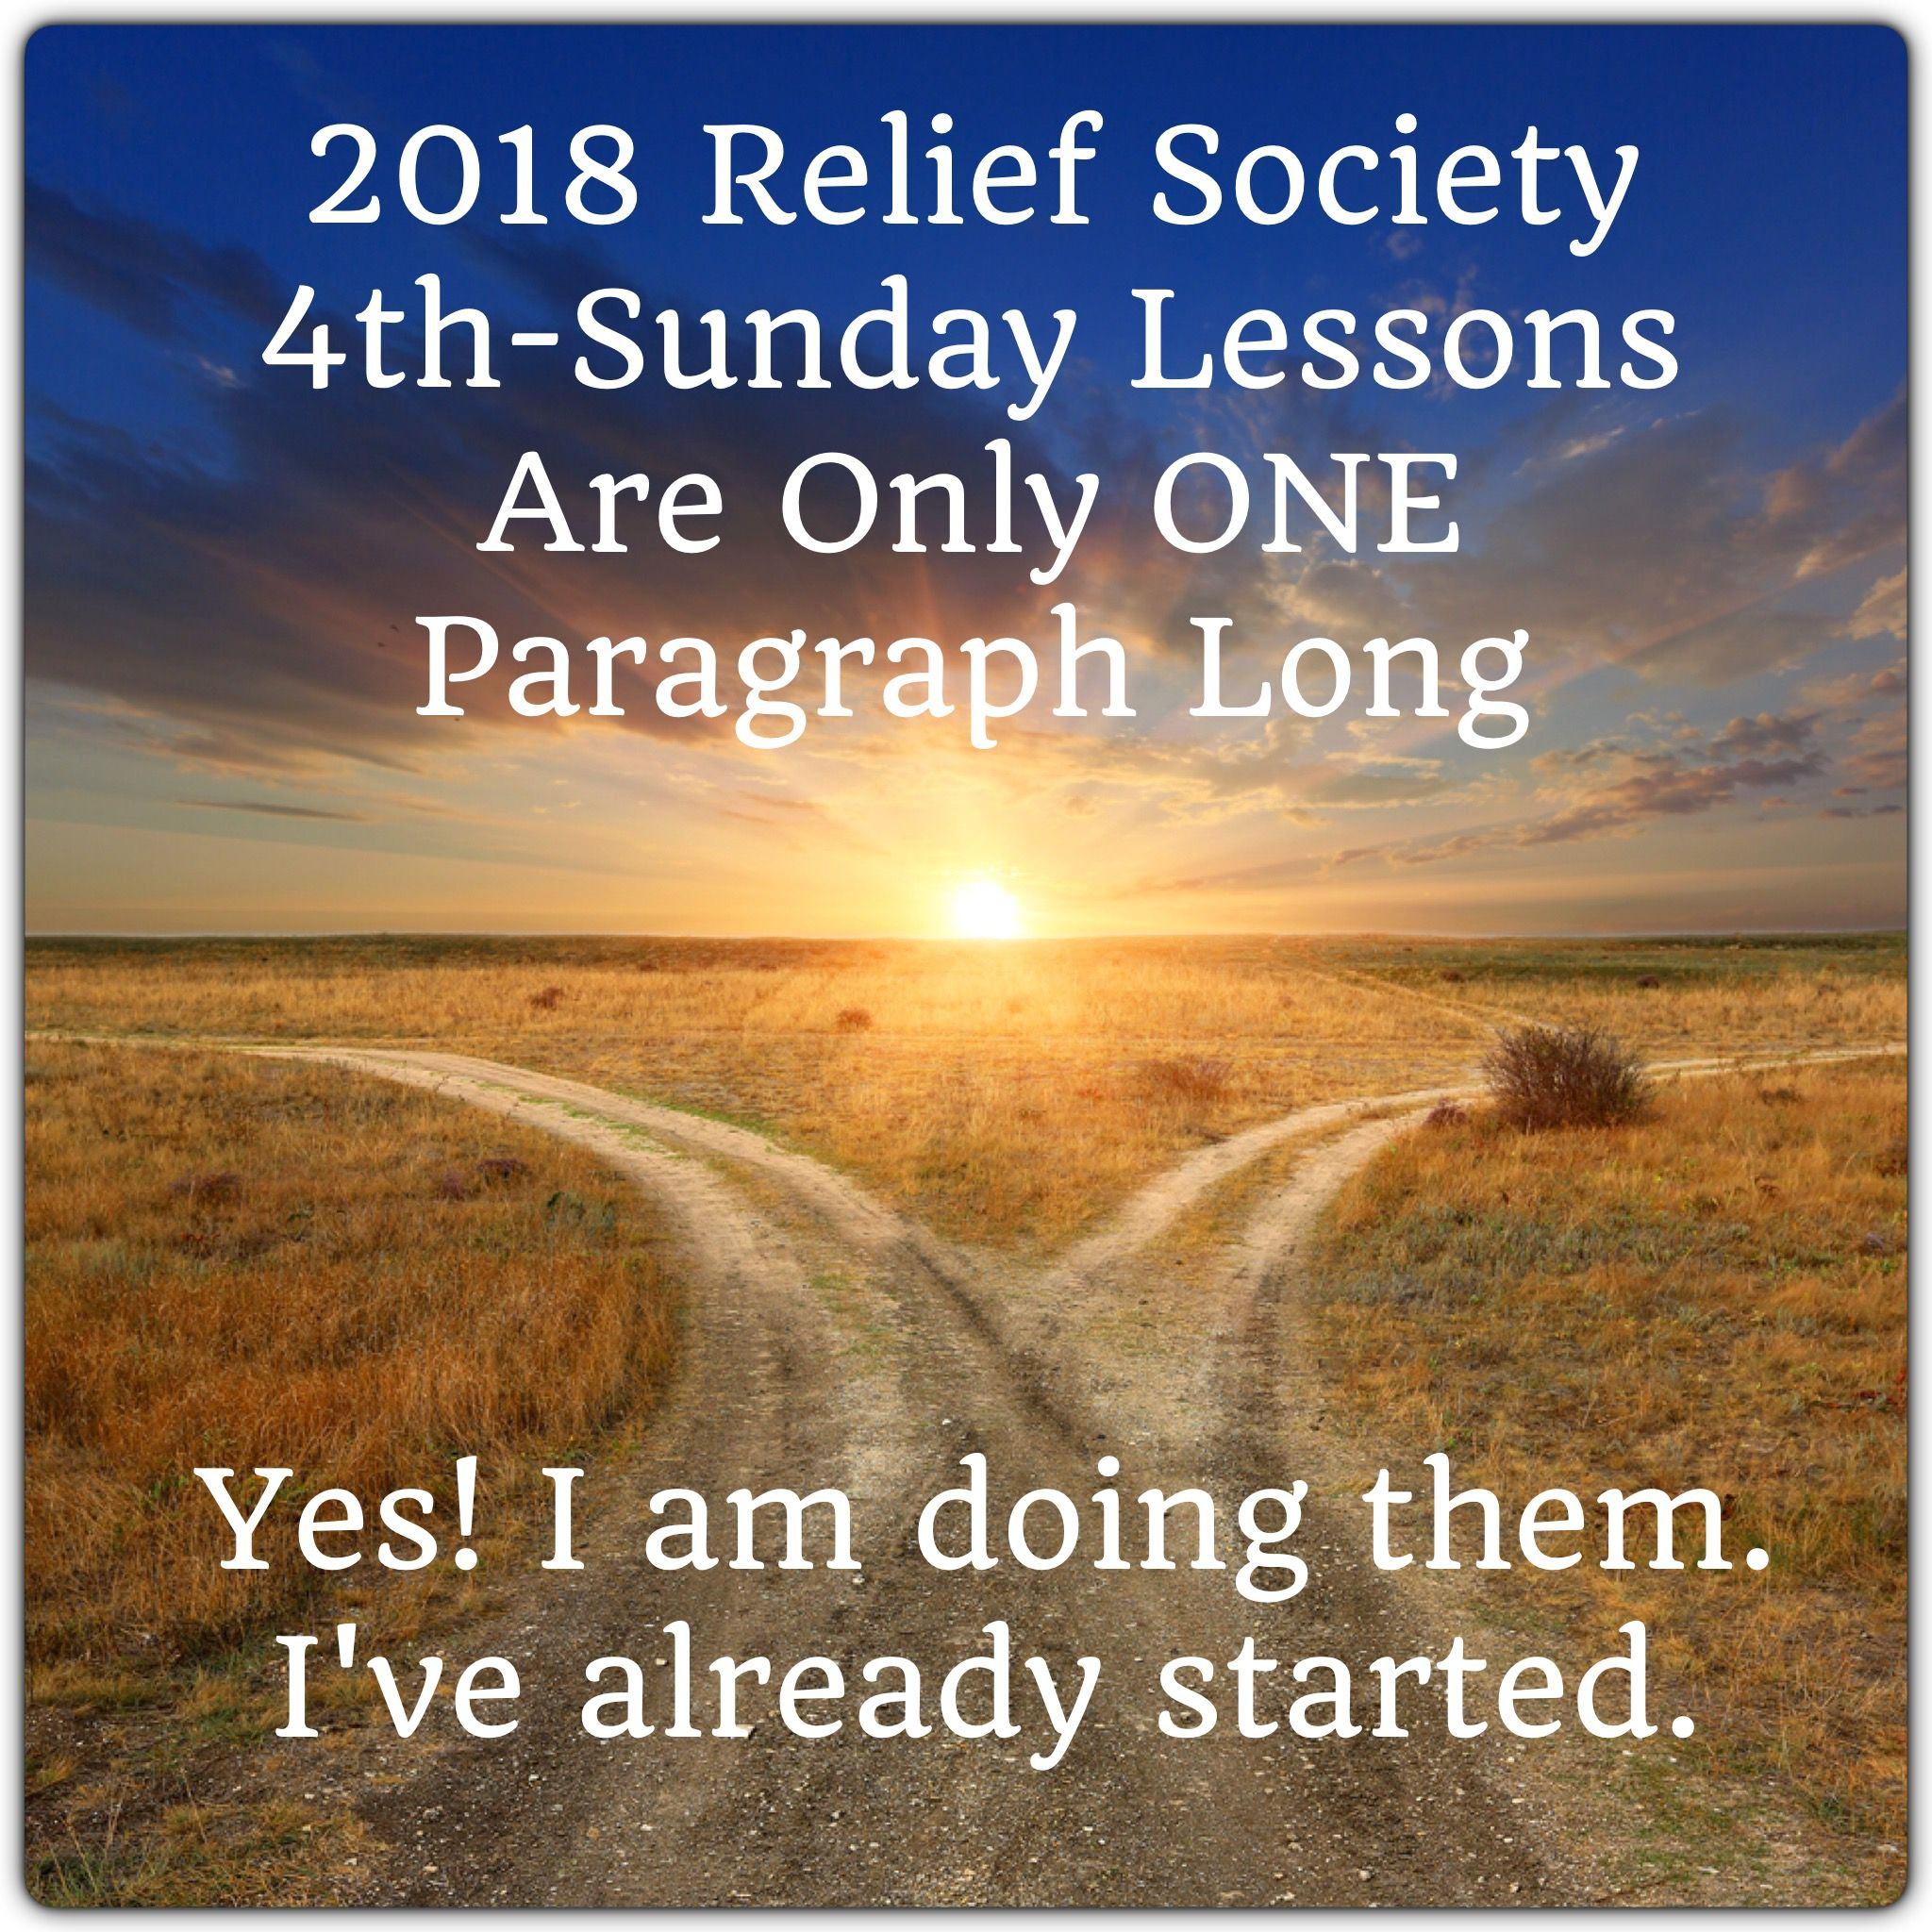 Here comes 2018 relief society 4th sunday lesson helps church the lds church website has just put out the sunday lessons for there are six of them all of them the same topic sabbath day and they are only one biocorpaavc